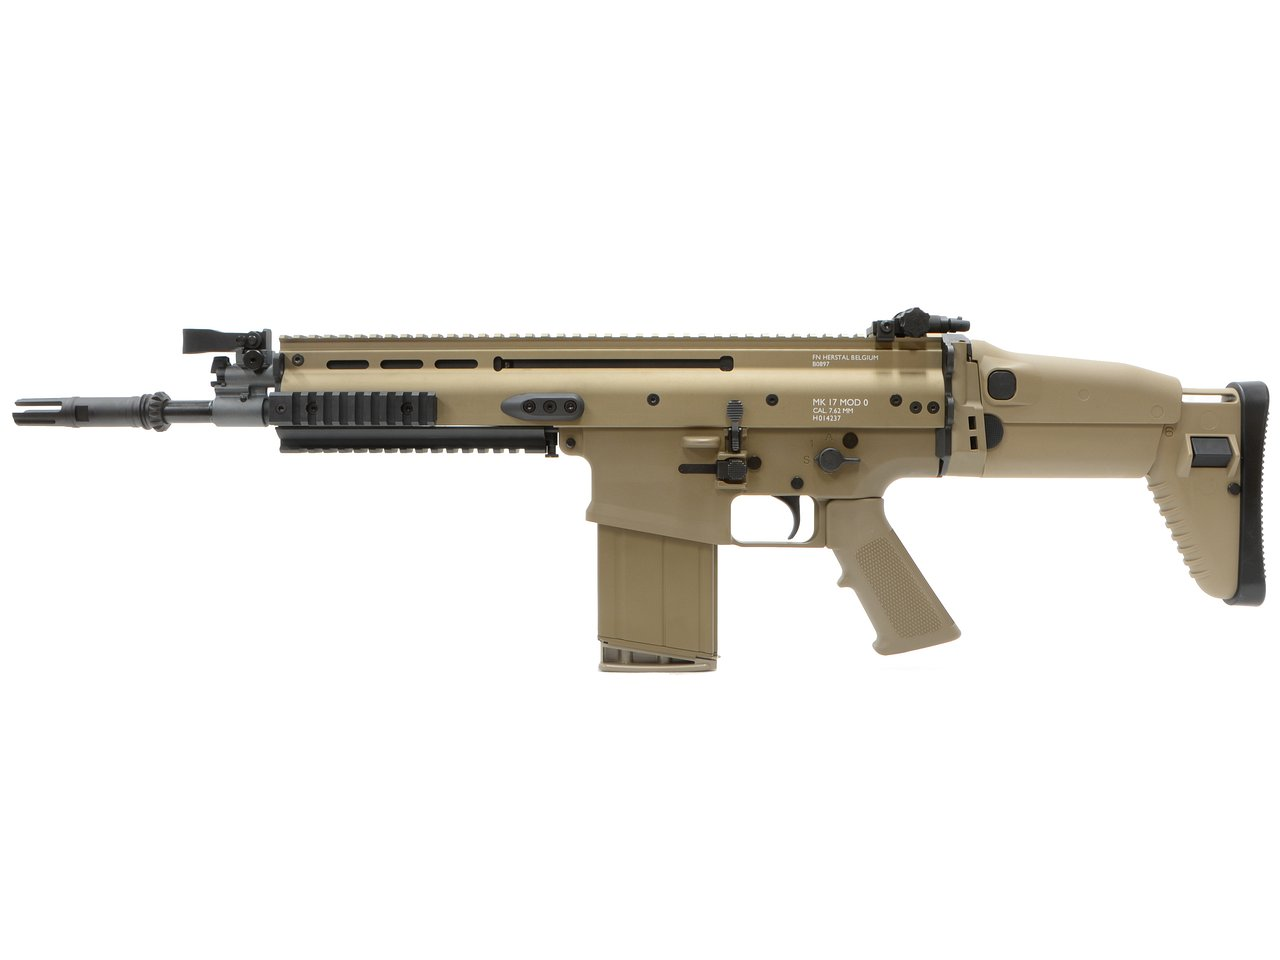 CyberGun FN SCAR-H GBBR (Mk17 JPversion) FDE